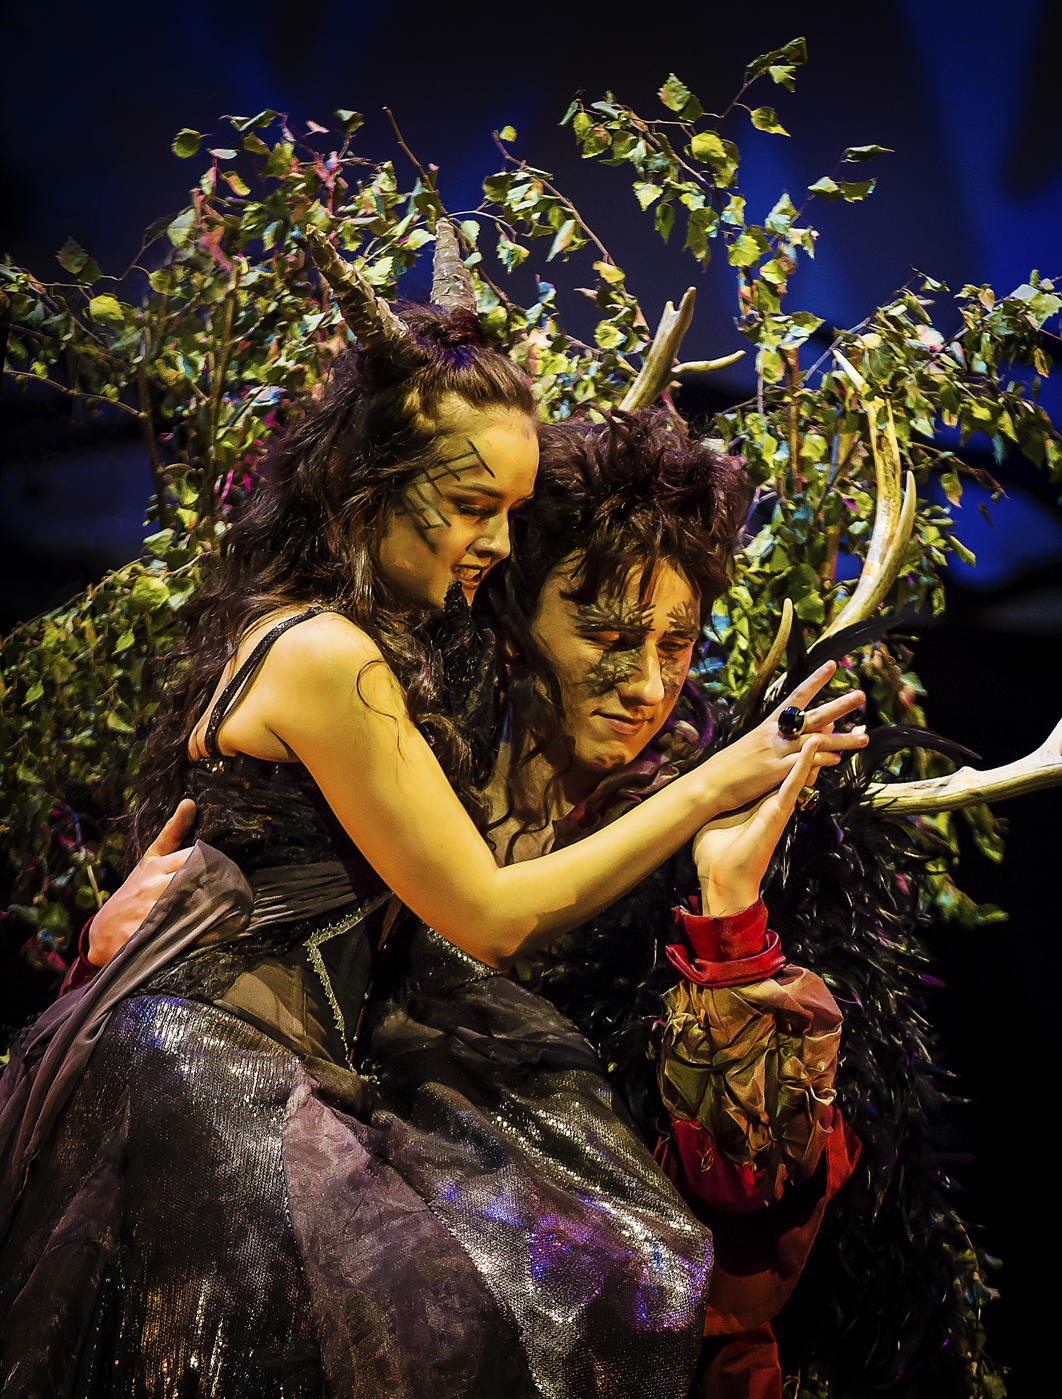 Viewers Delighted By Gay Scenes In Bbc's A Midsummer Night's Dream